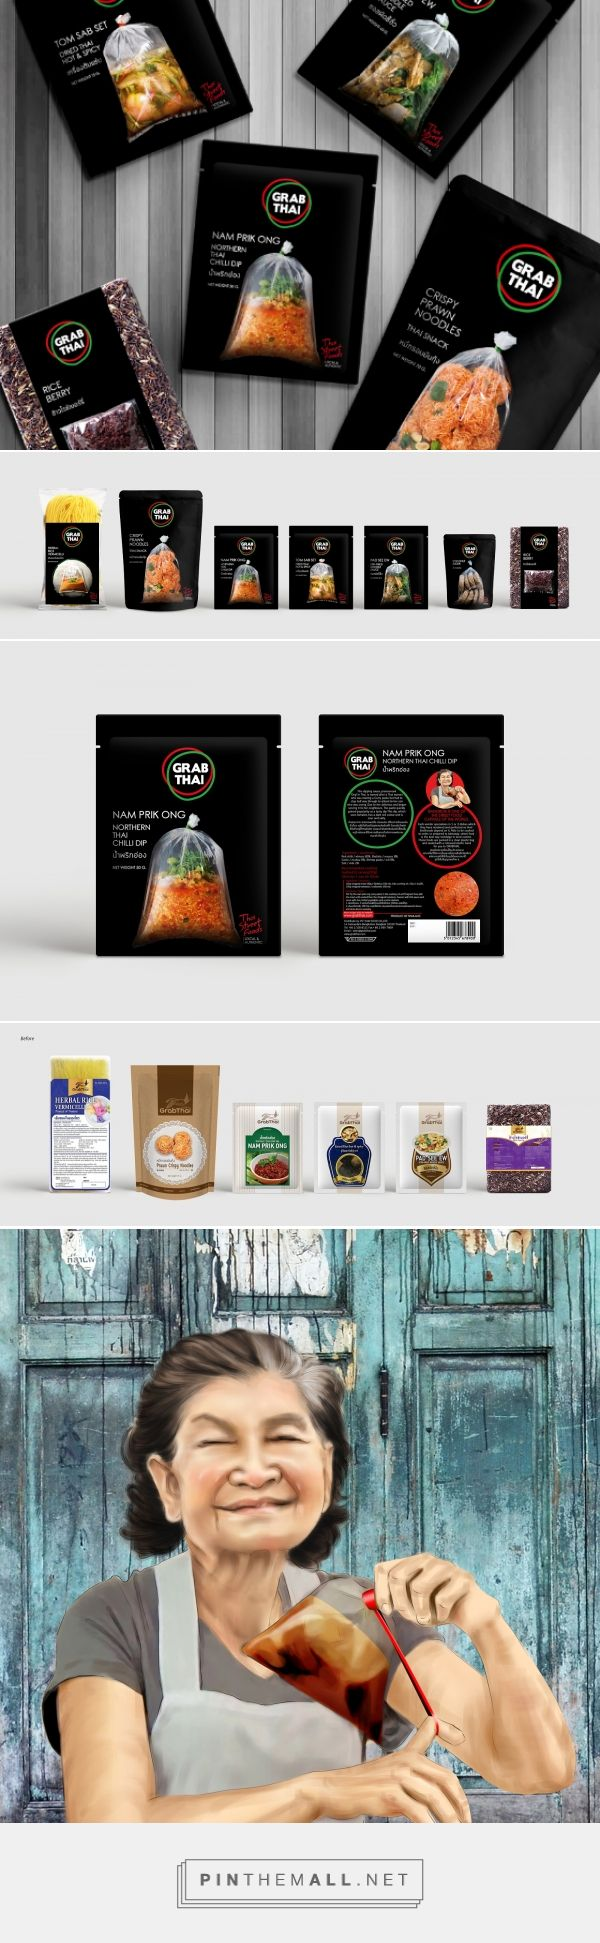 Before & After - Grab Thai packaging design by Prompt Partners - https://www.packagingoftheworld.com/2018/03/grab-thai.html